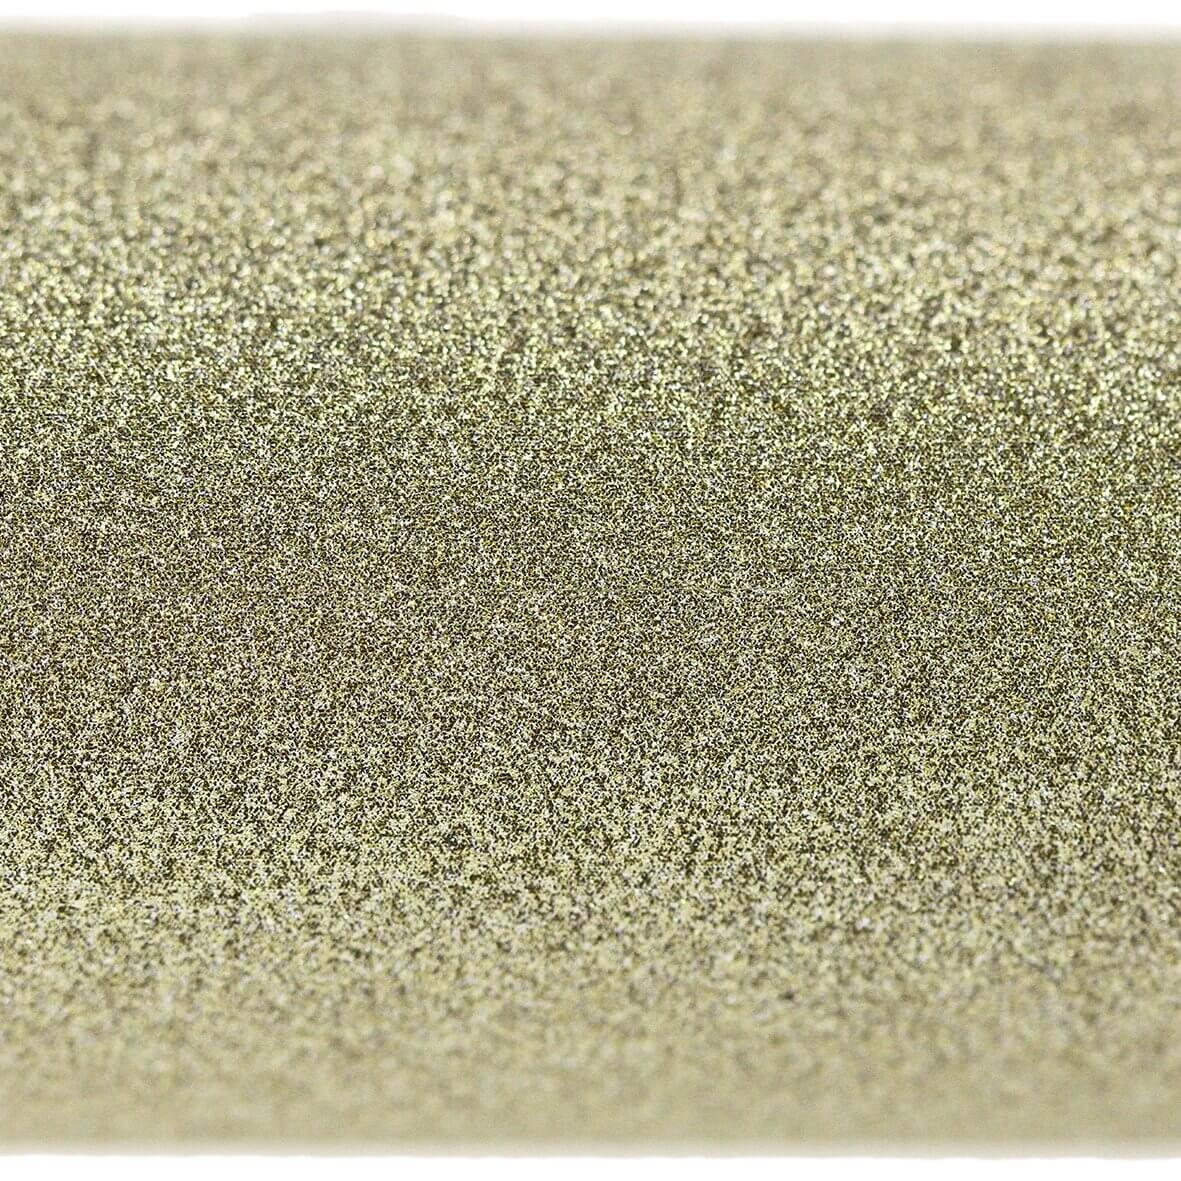 Luxe Cosmic Gold A4 Glitter Card - Zoom